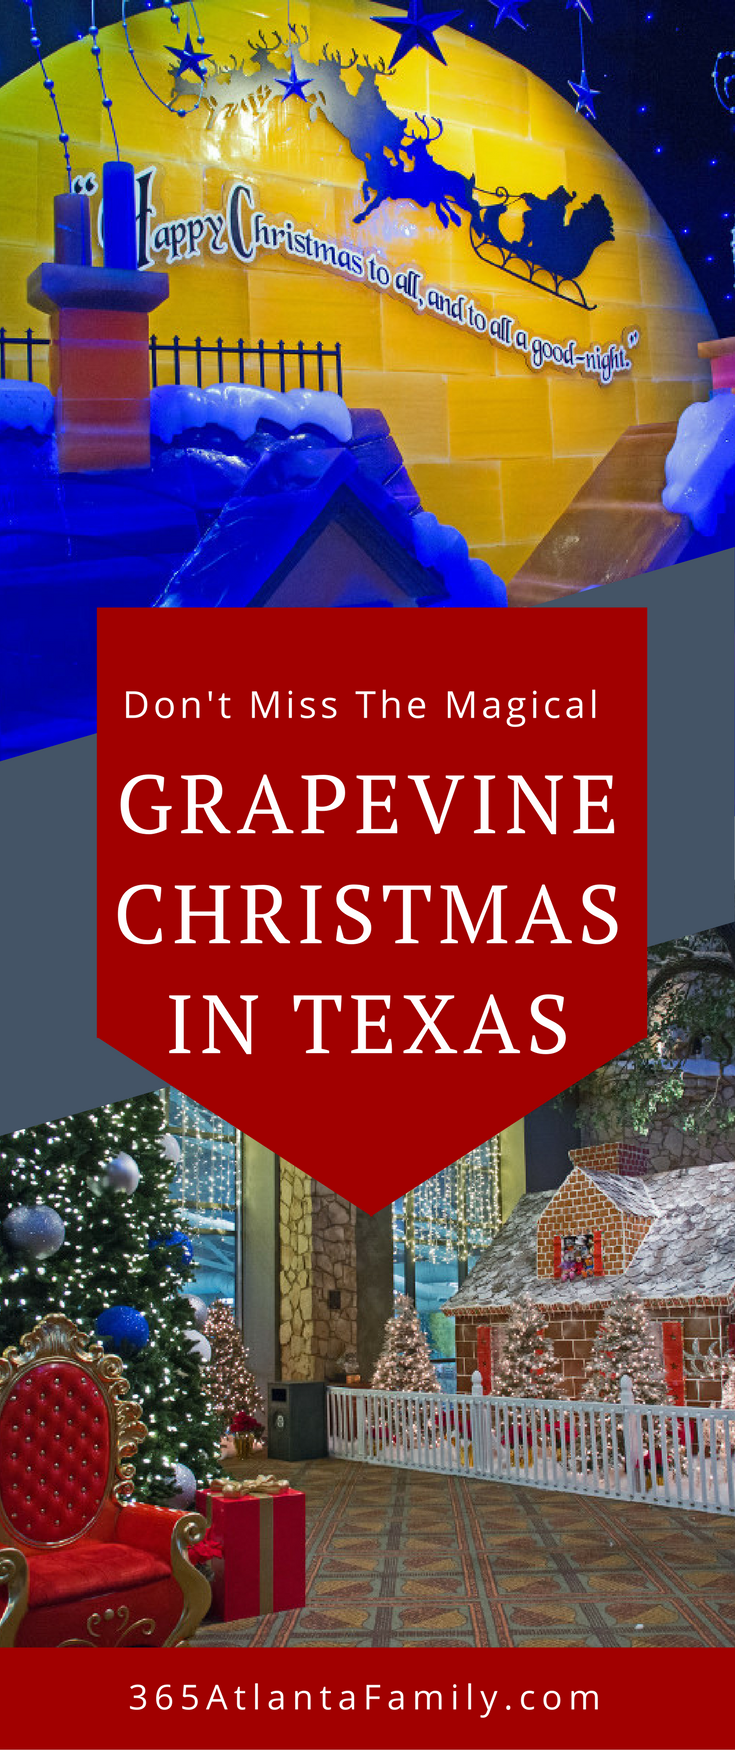 Don't Miss The Magical Grapevine Christmas In Texas